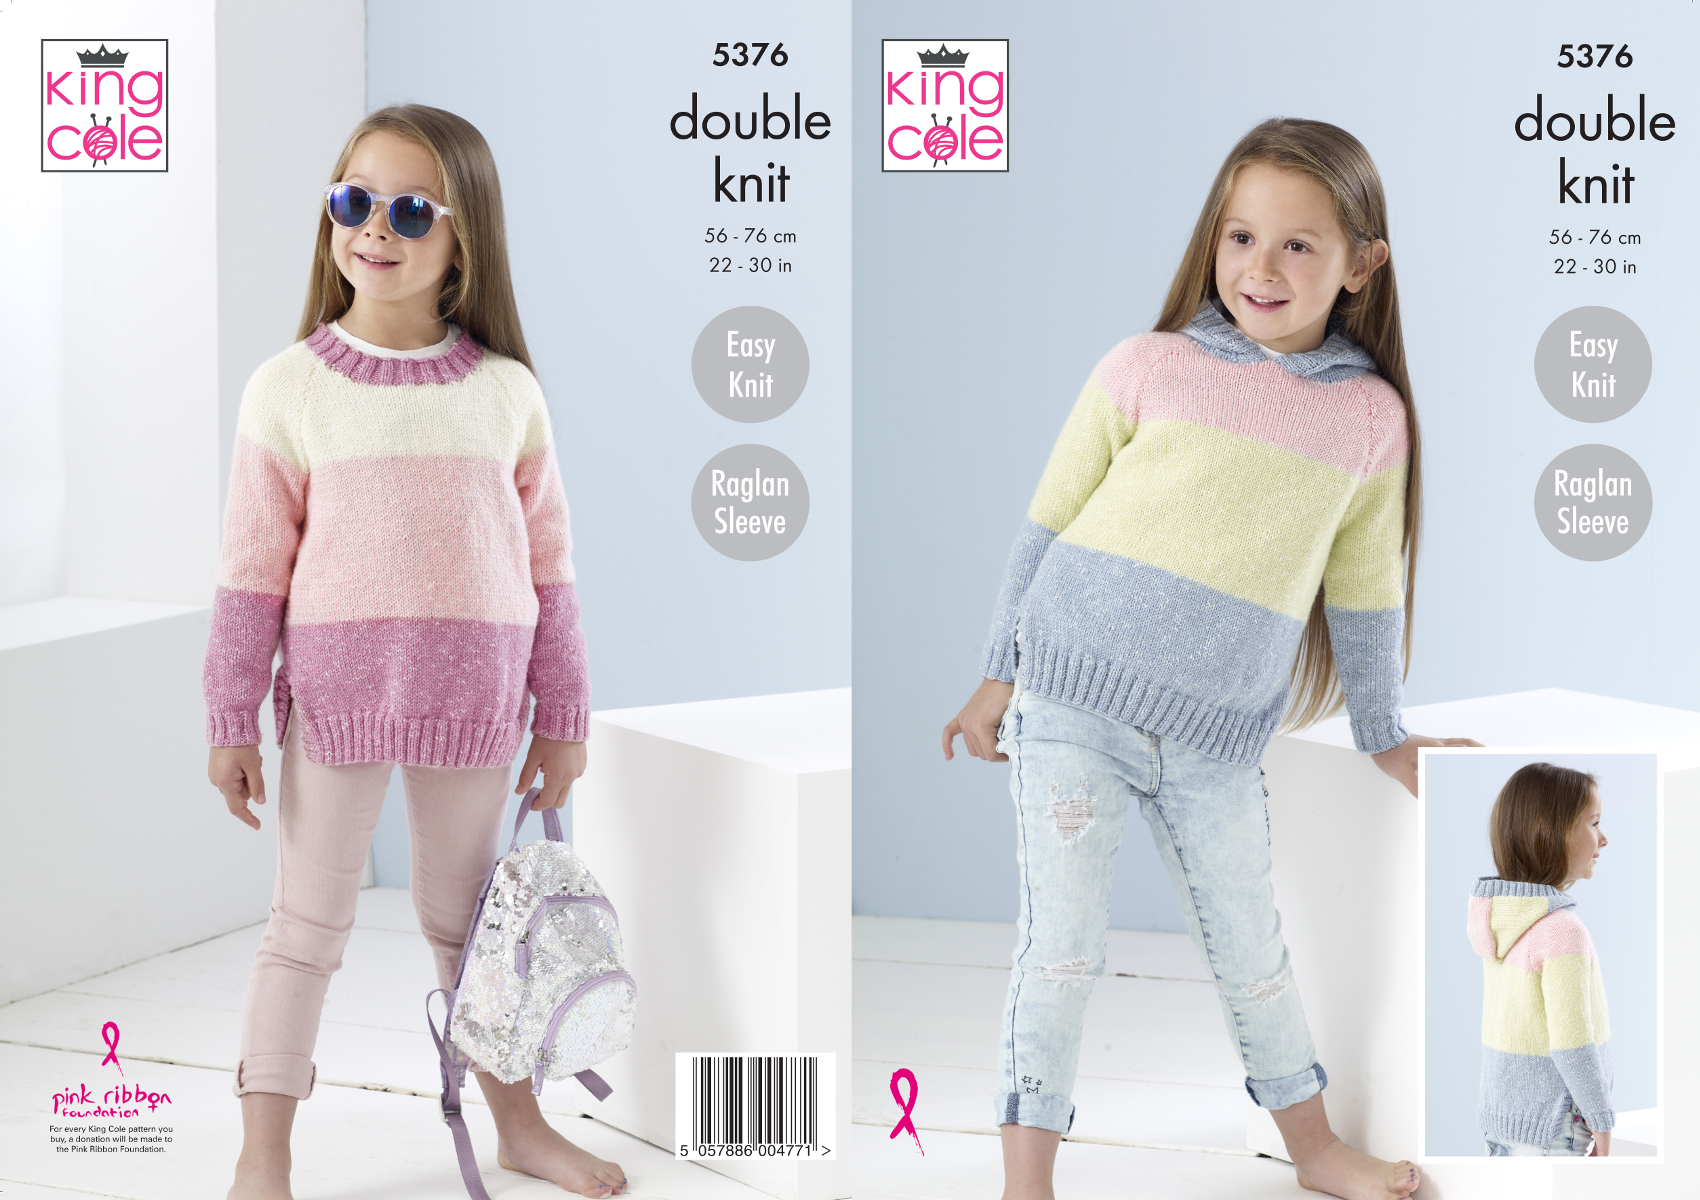 328e8f38d Easy Knit Girls Knitting Pattern Round Neck or Hooded Jumper King .